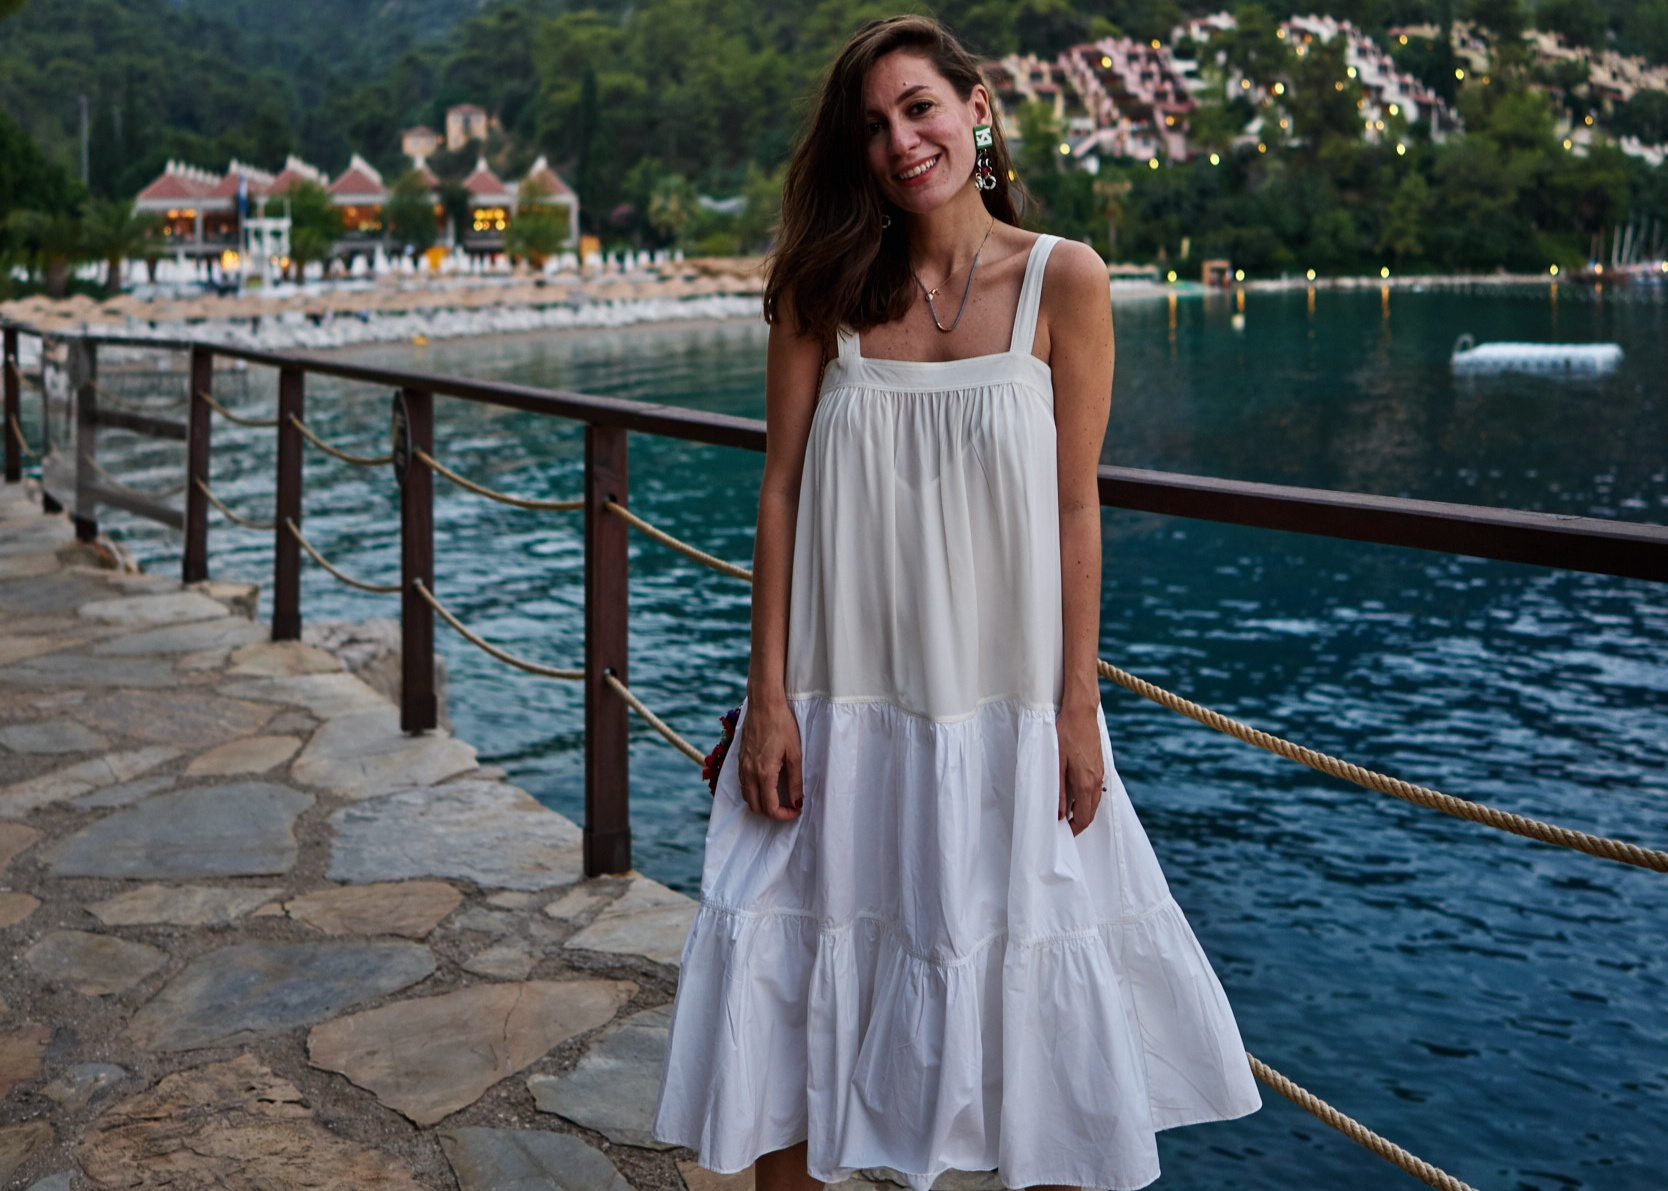 billur saatci, offnegiysem, street style, turkish style blogger, hillside beach club, sunset, heaven on earth, co,